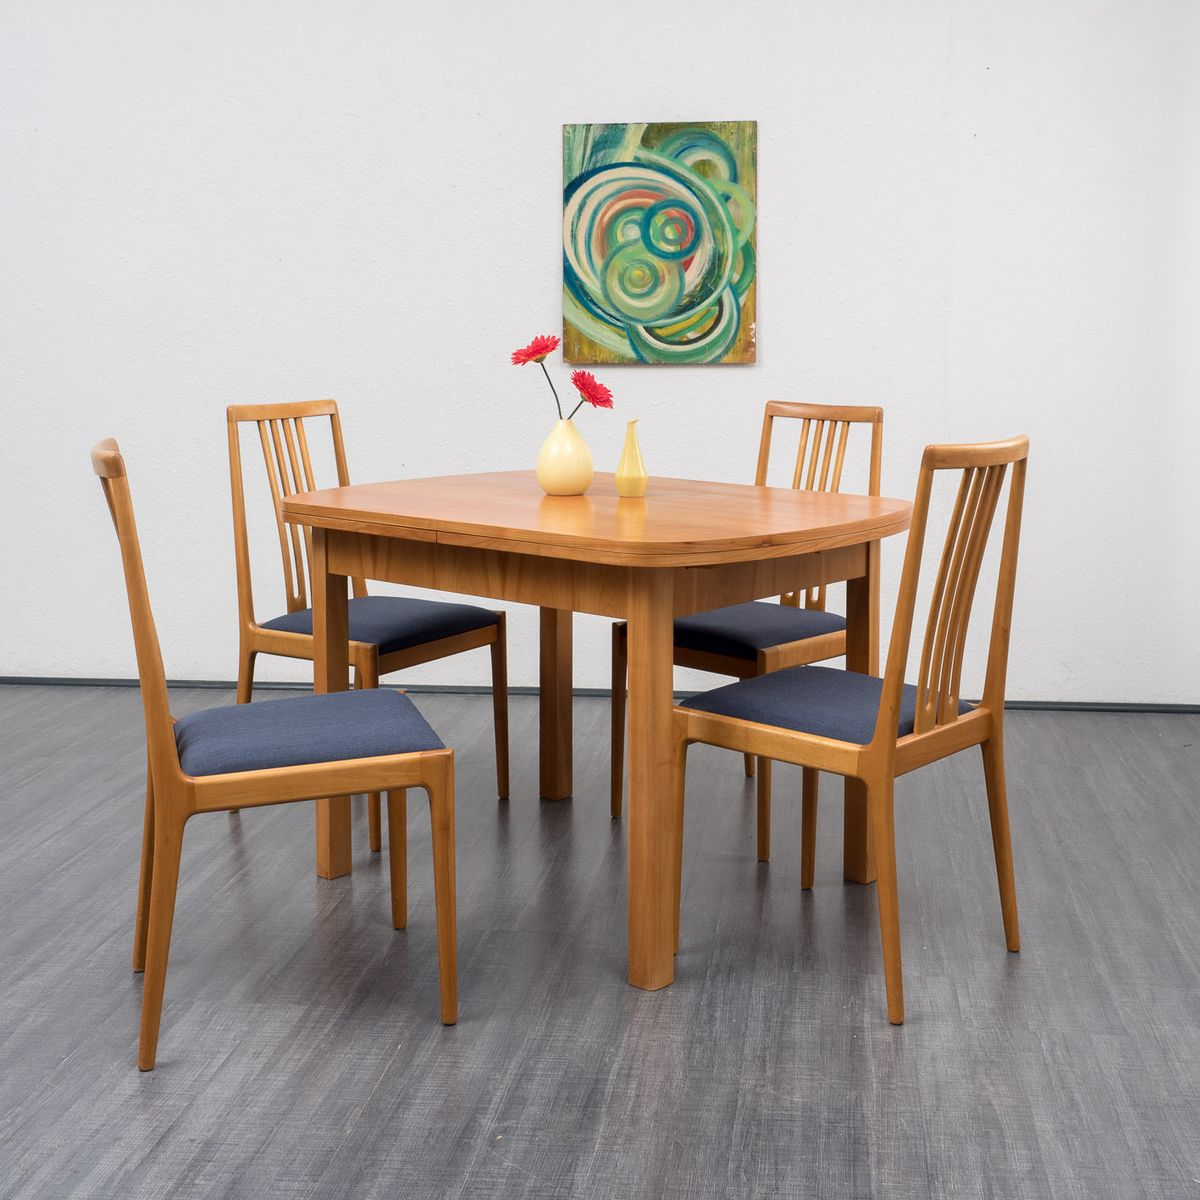 extendable cherry dining table 1950s 11 89800 price per piece. Interior Design Ideas. Home Design Ideas